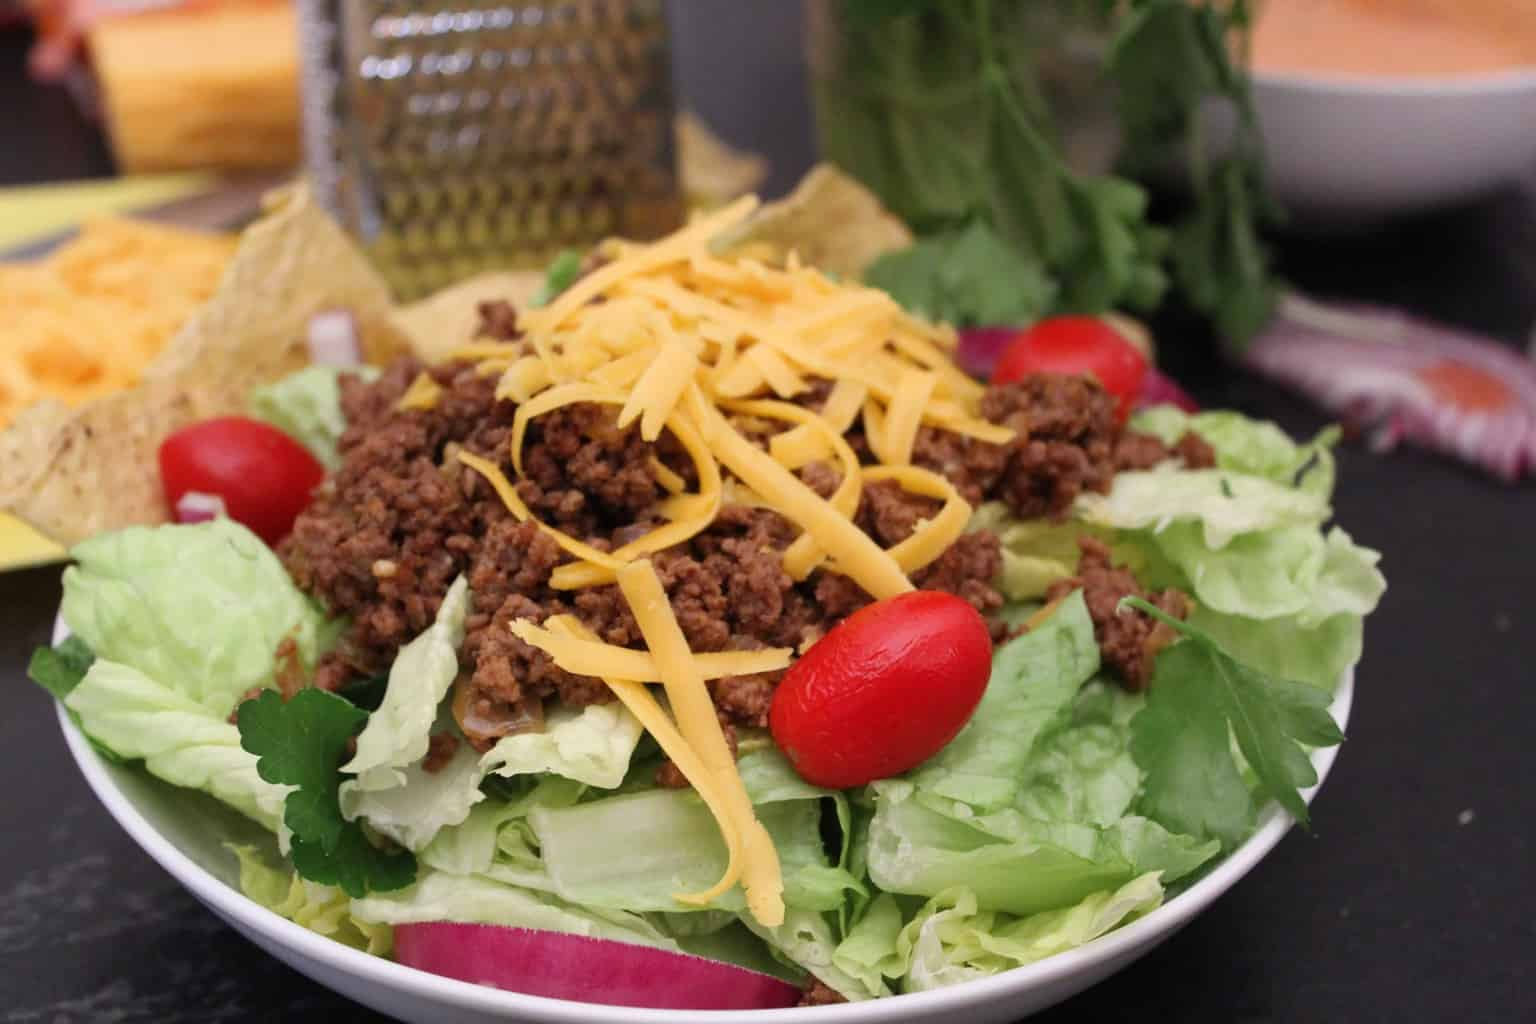 Weeknight Taco Salad garnished with taco meat, red onion, cherry tomatoes and shredded cheese